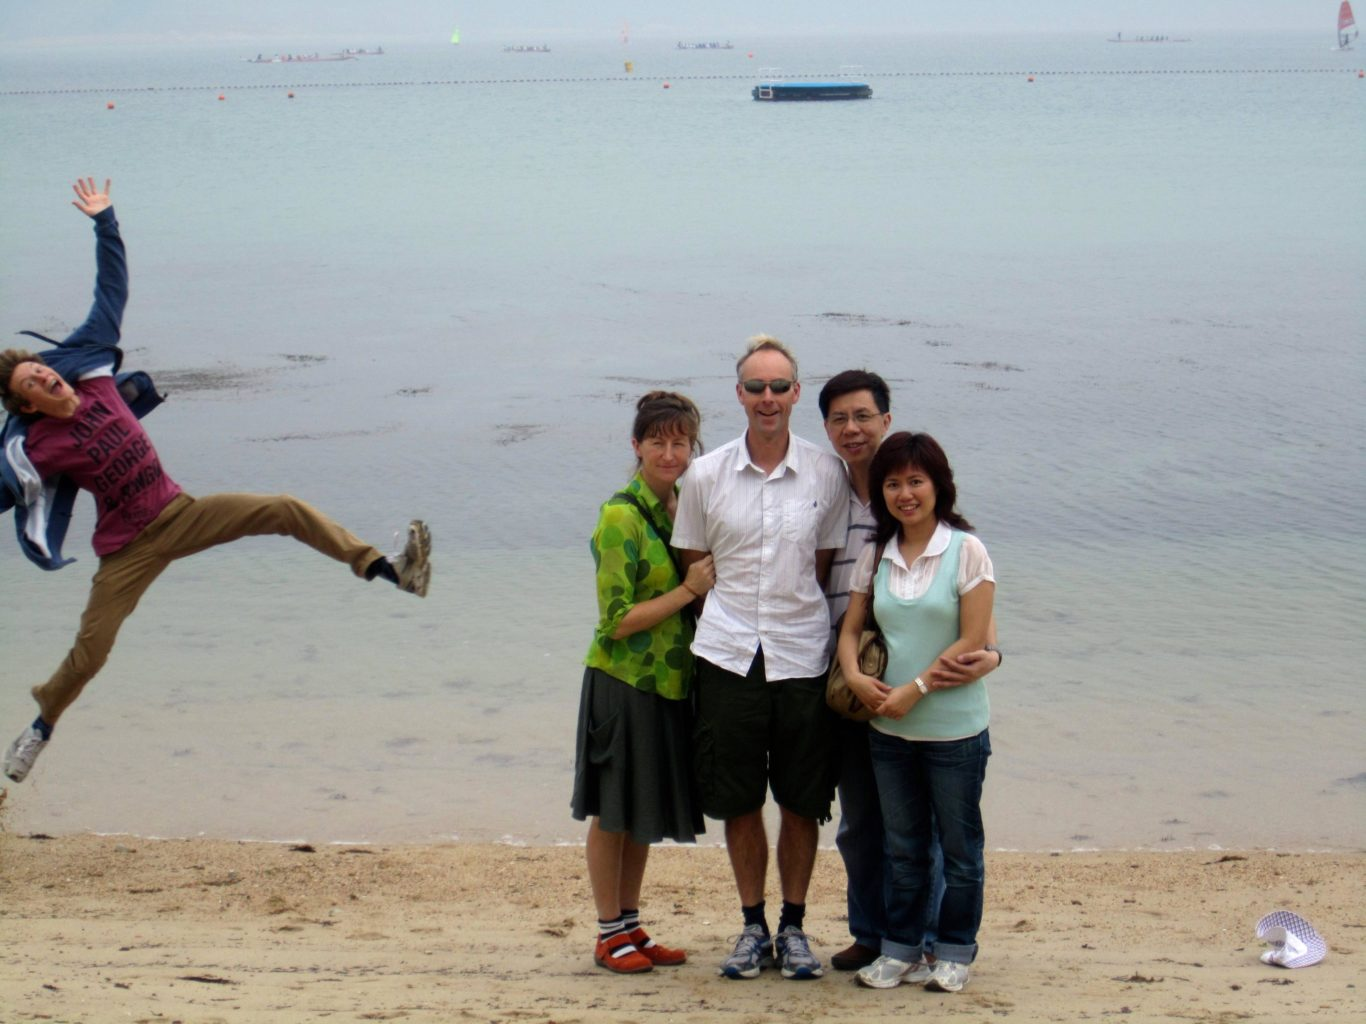 Awesome_photobomb_on_a_beach